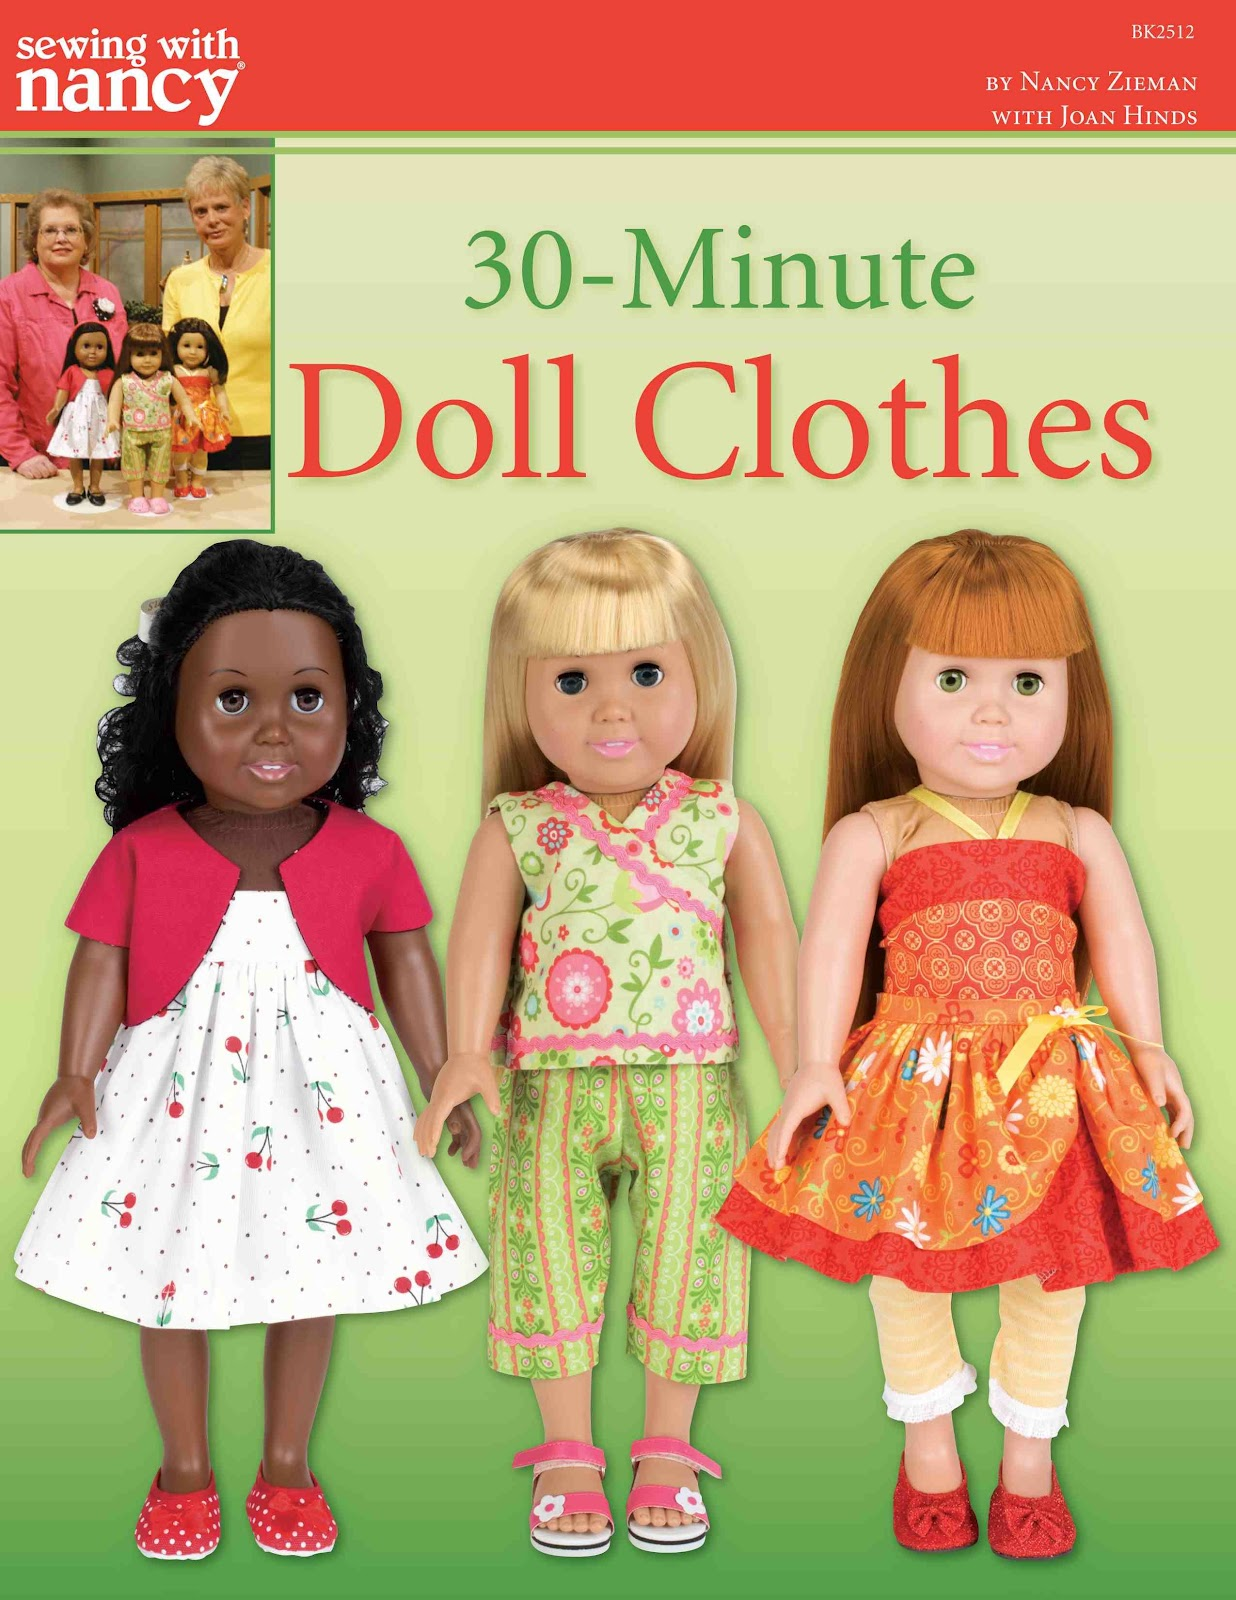 18 Inch Doll Clothes Patterns Printable | Search Results | Calendar ...